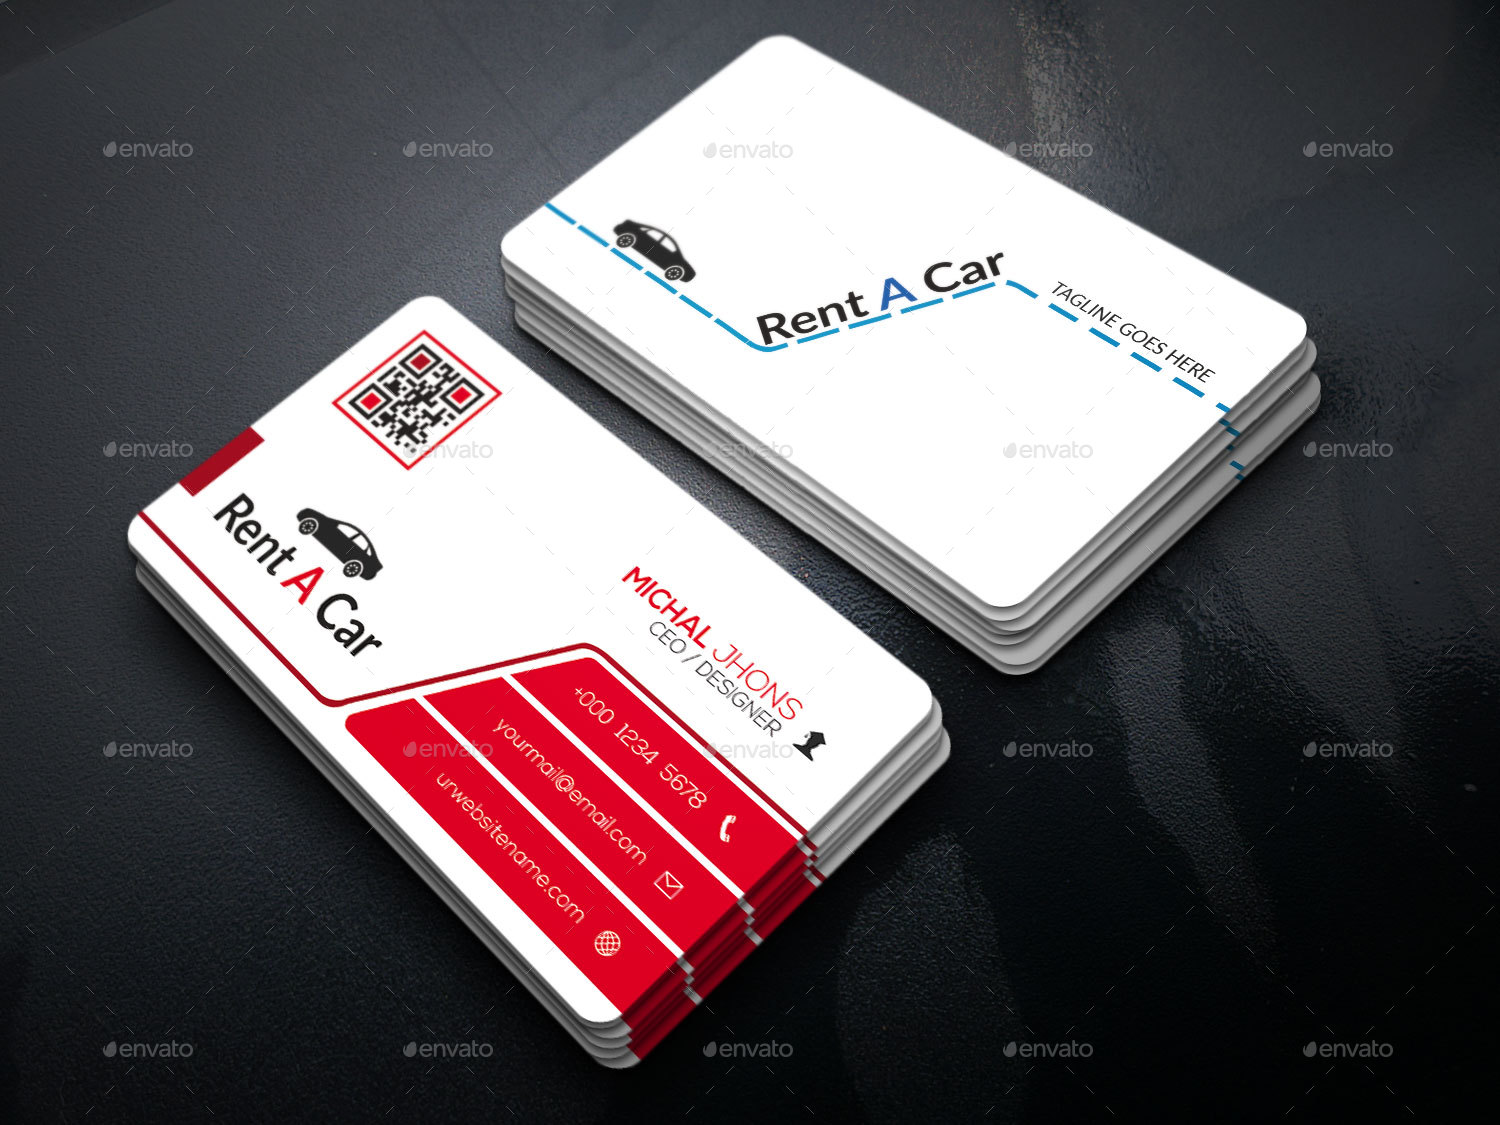 Rent a car business card by workertm graphicriver rent a car business card business cards print templates preview image set01screenshotg preview image set02screenshotg colourmoves